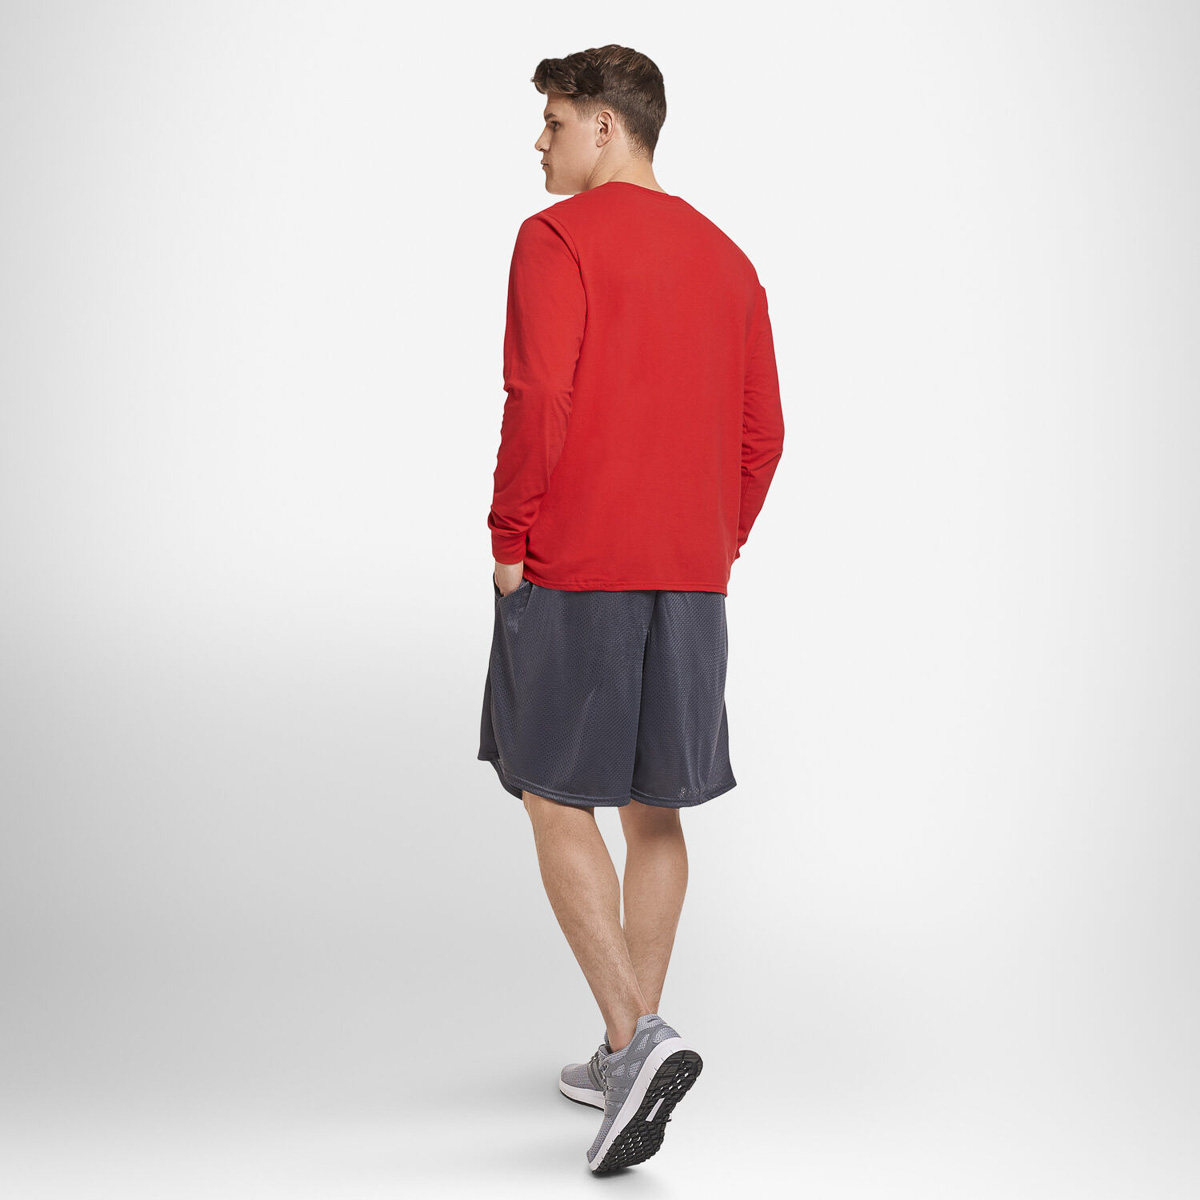 Russell-Athletic-Mens-Shorts-With-Pockets-Mesh-Moisture-Wicking-Gym-Activewear thumbnail 24